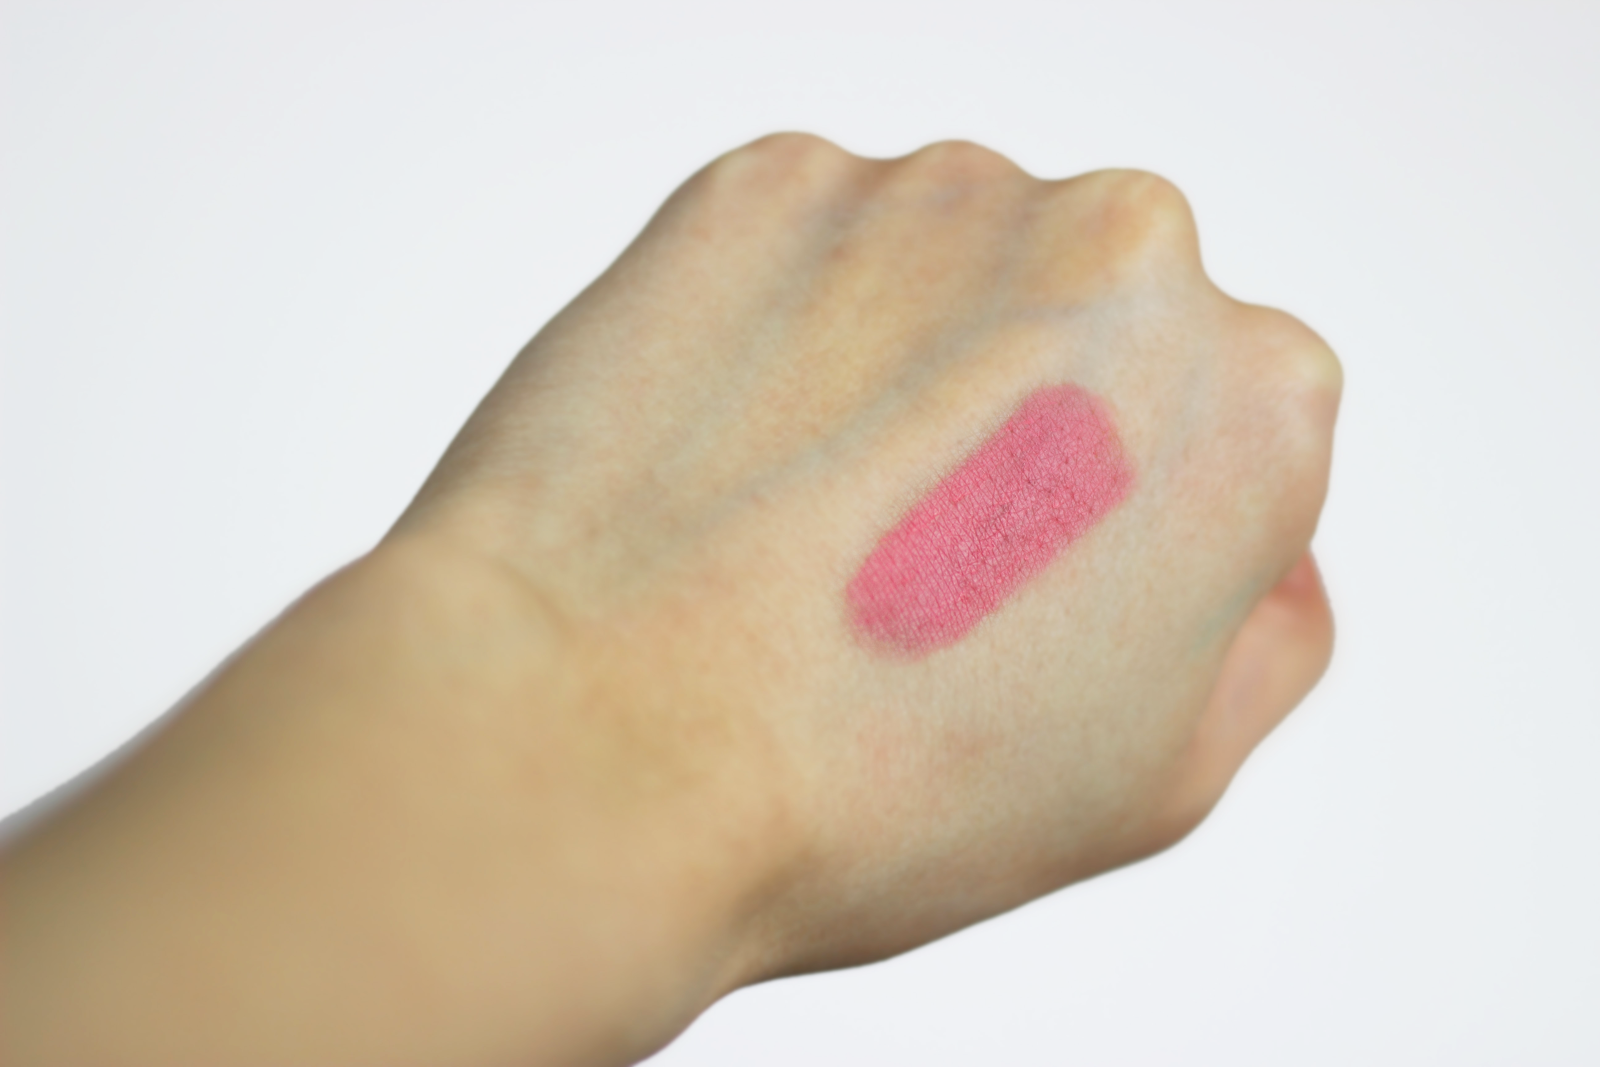 glossybox, glossybox uk, review, beauty review, makeup, beauty, anasofiachic, lifestyle, makeup blogger, motd, mua, beauty blogger, lifestyle blogger, fashion blogger, fashion, anasofiachic, uk blogger, glossybox may 2015, lipstick, pastel pink